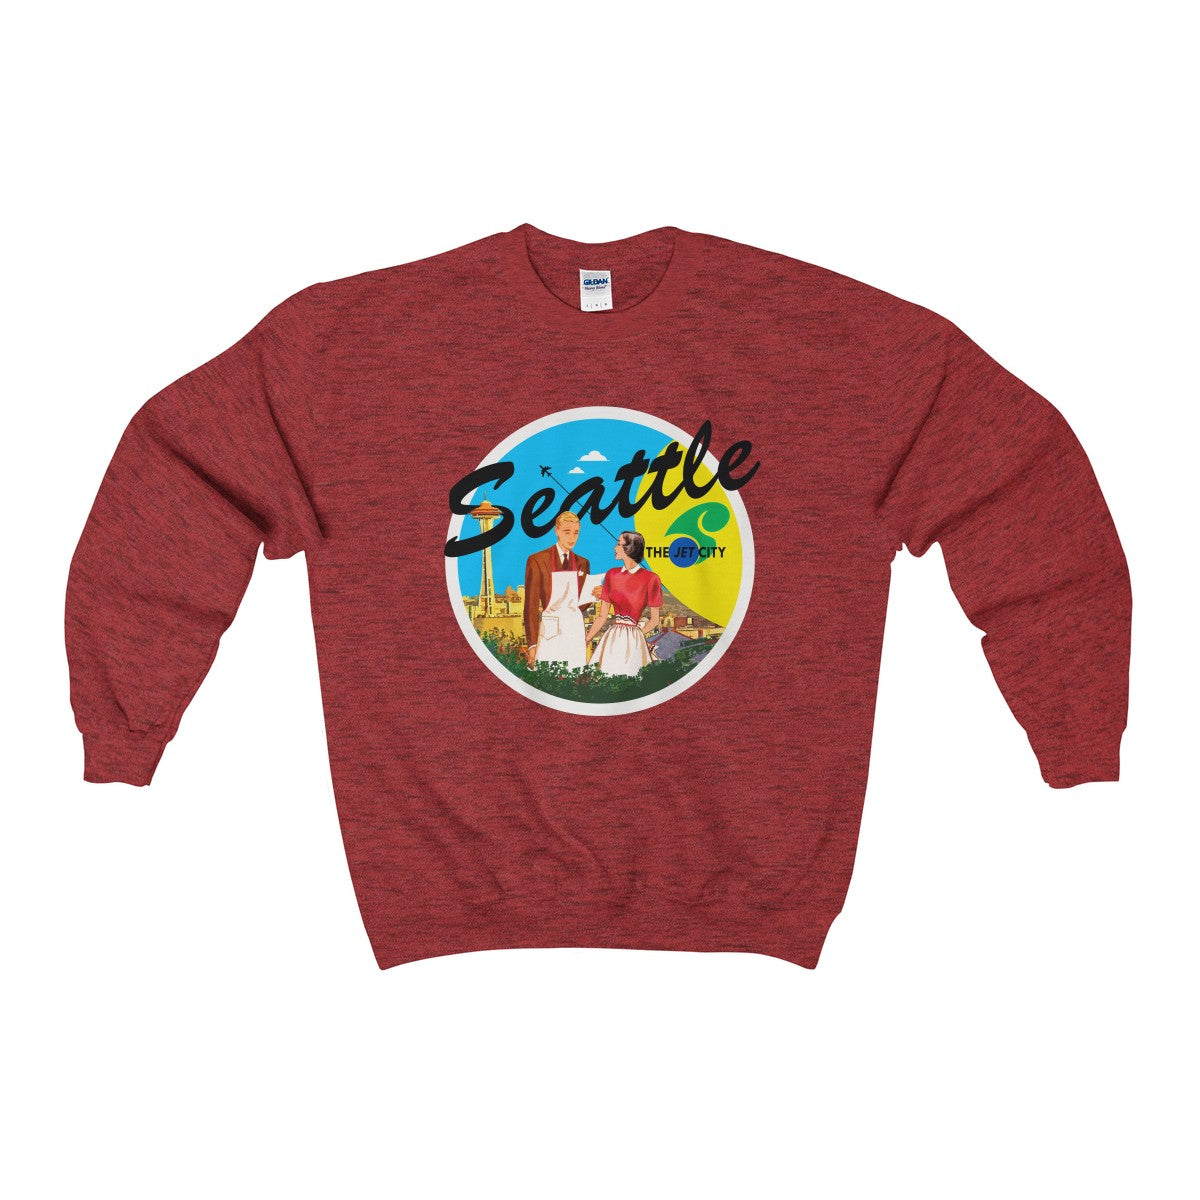 Rocco's Jet City: Bob and Gwen Unisex Heavy Blend™ Crewneck Sweatshirt